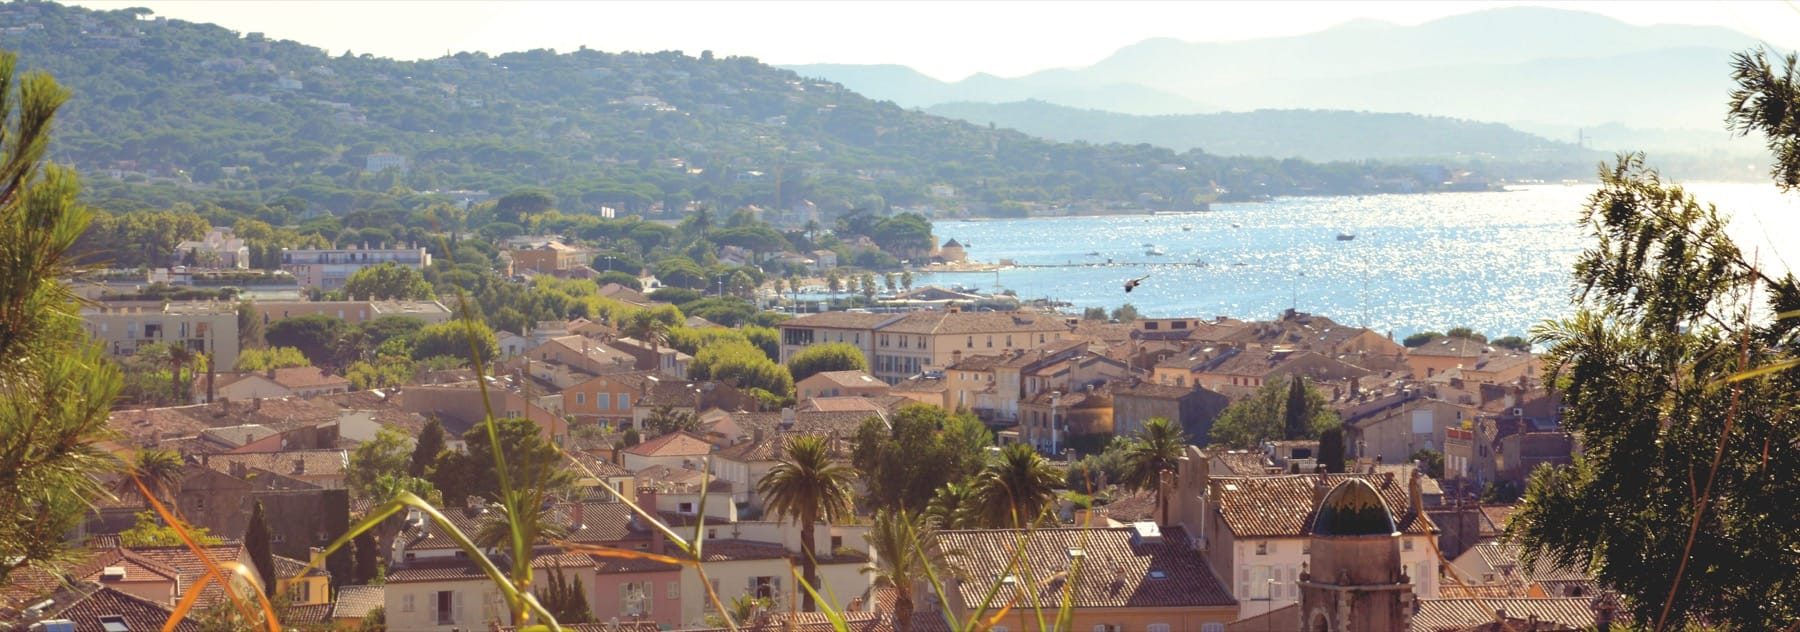 Saint-Tropez: small town with a big name